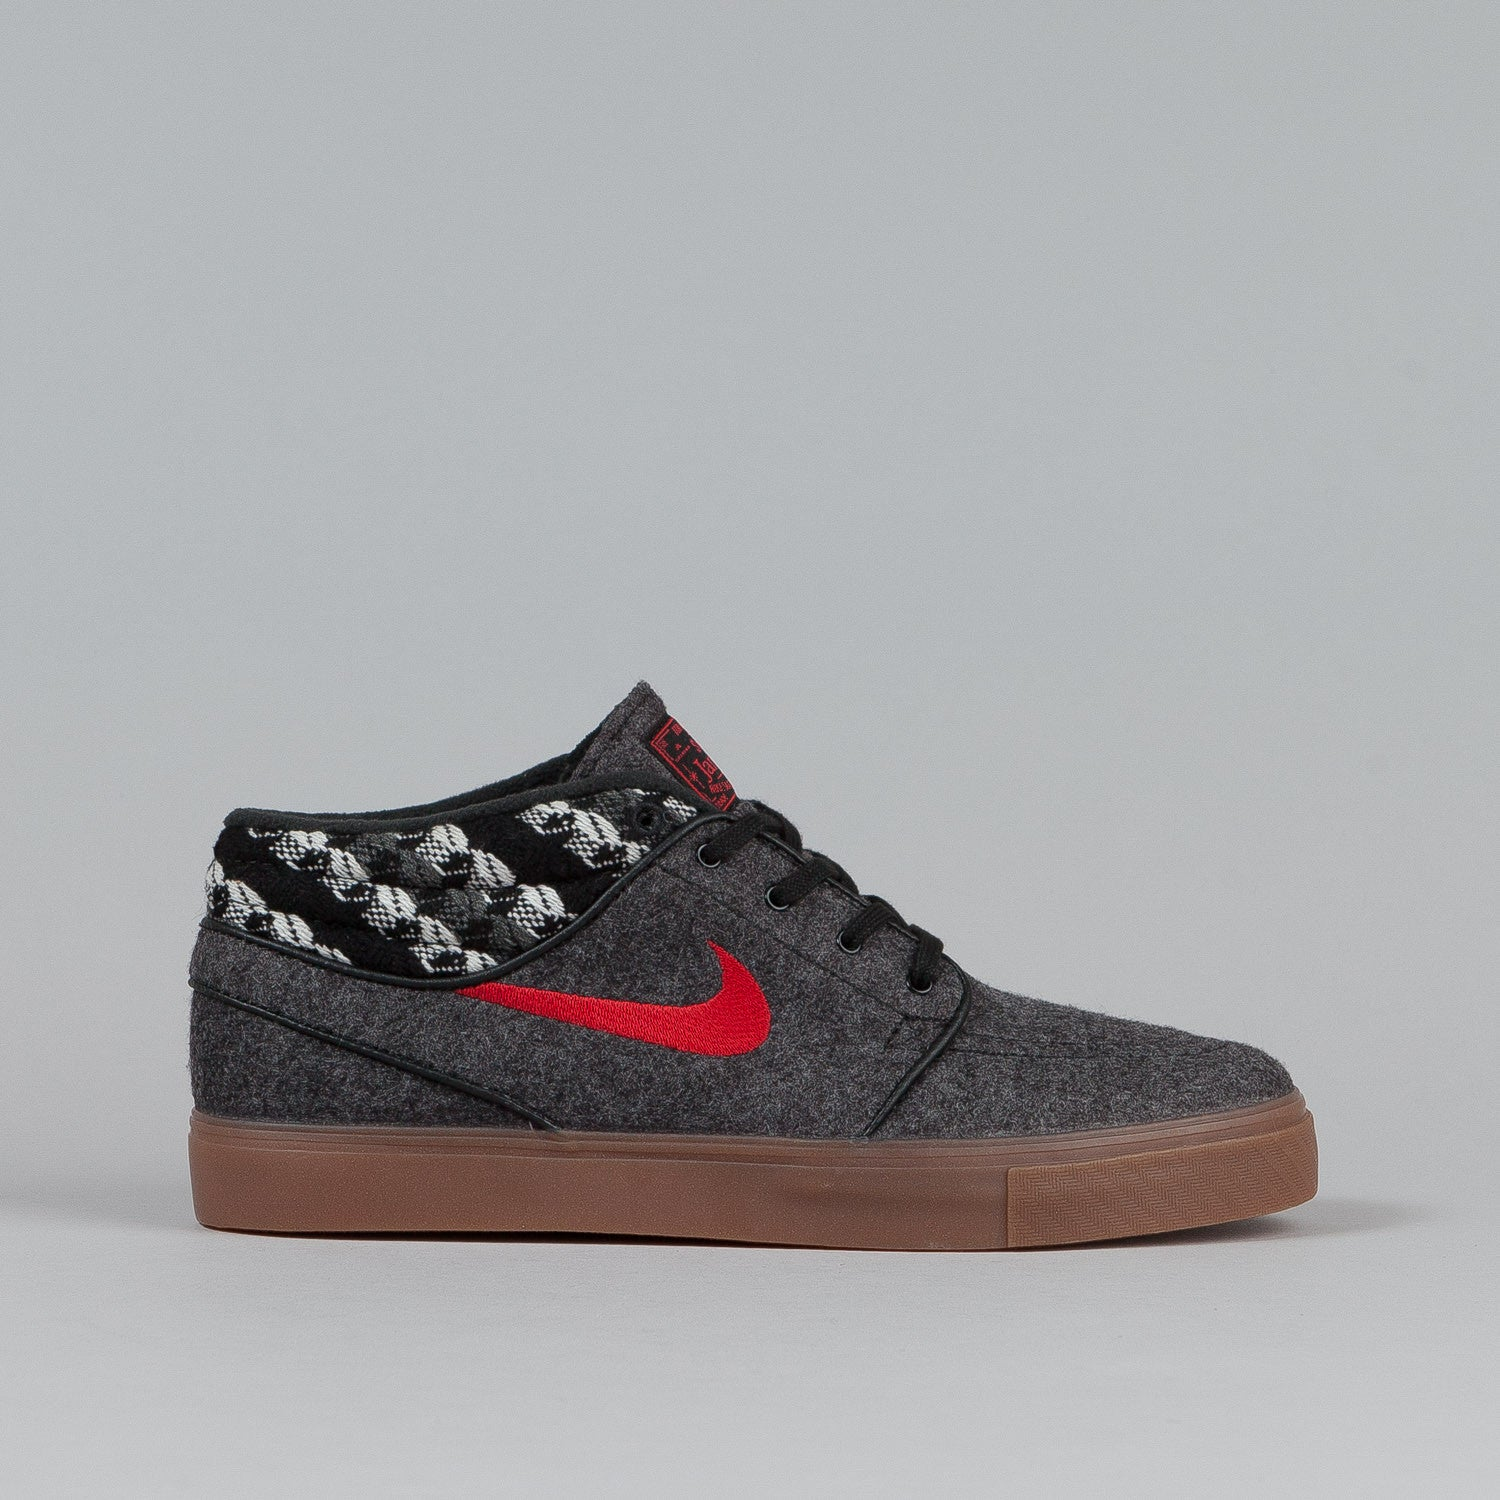 Nike SB Stefan Janoski Mid Shoes Black / Gym Red